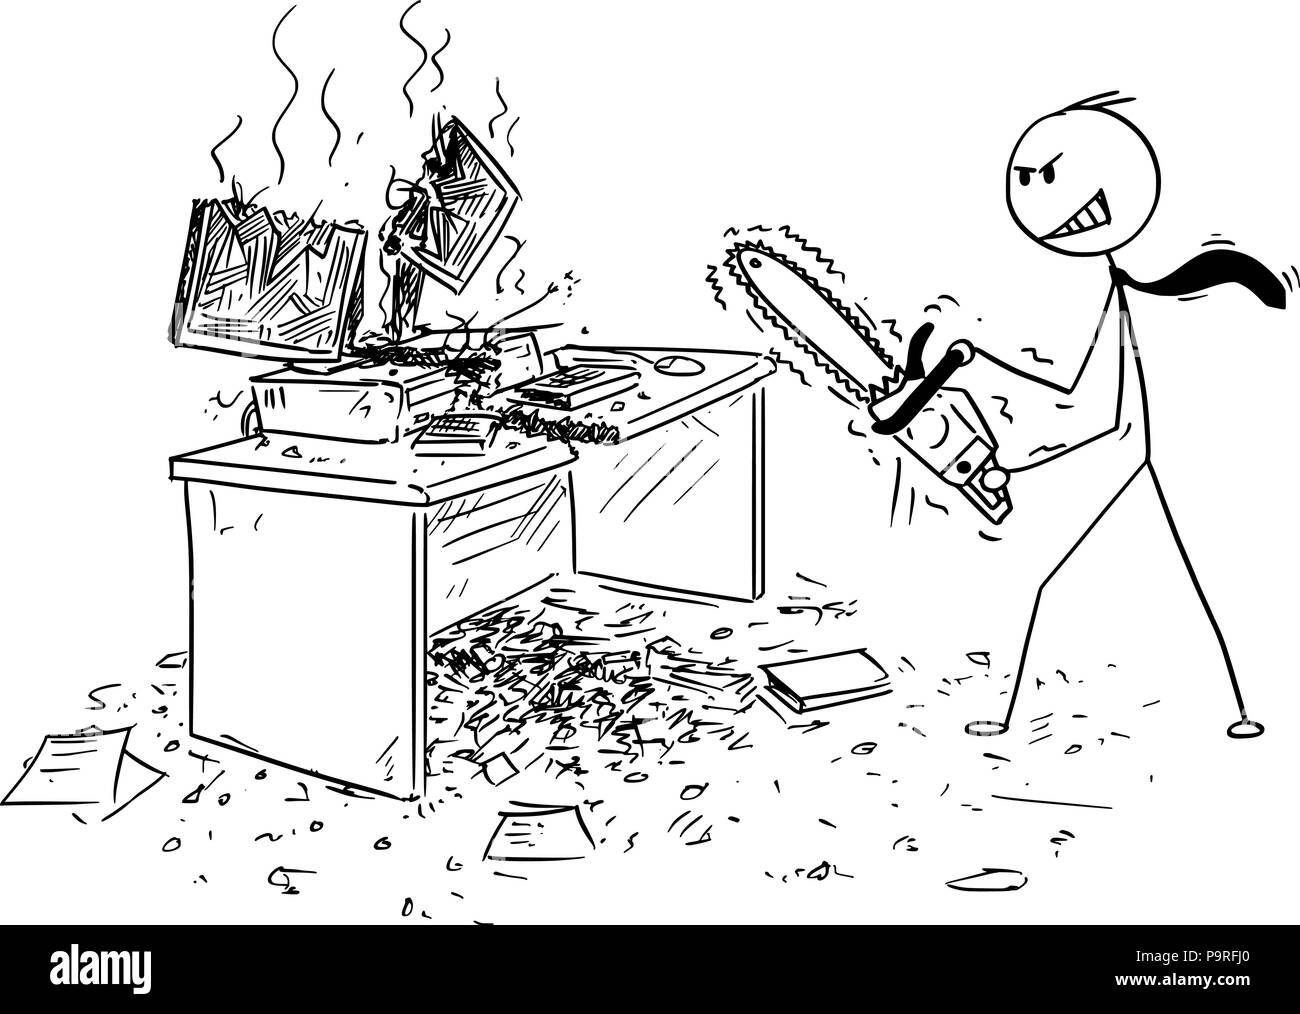 Cartoon of Angry Businessman With Chainsaw Destroying Computer and ...